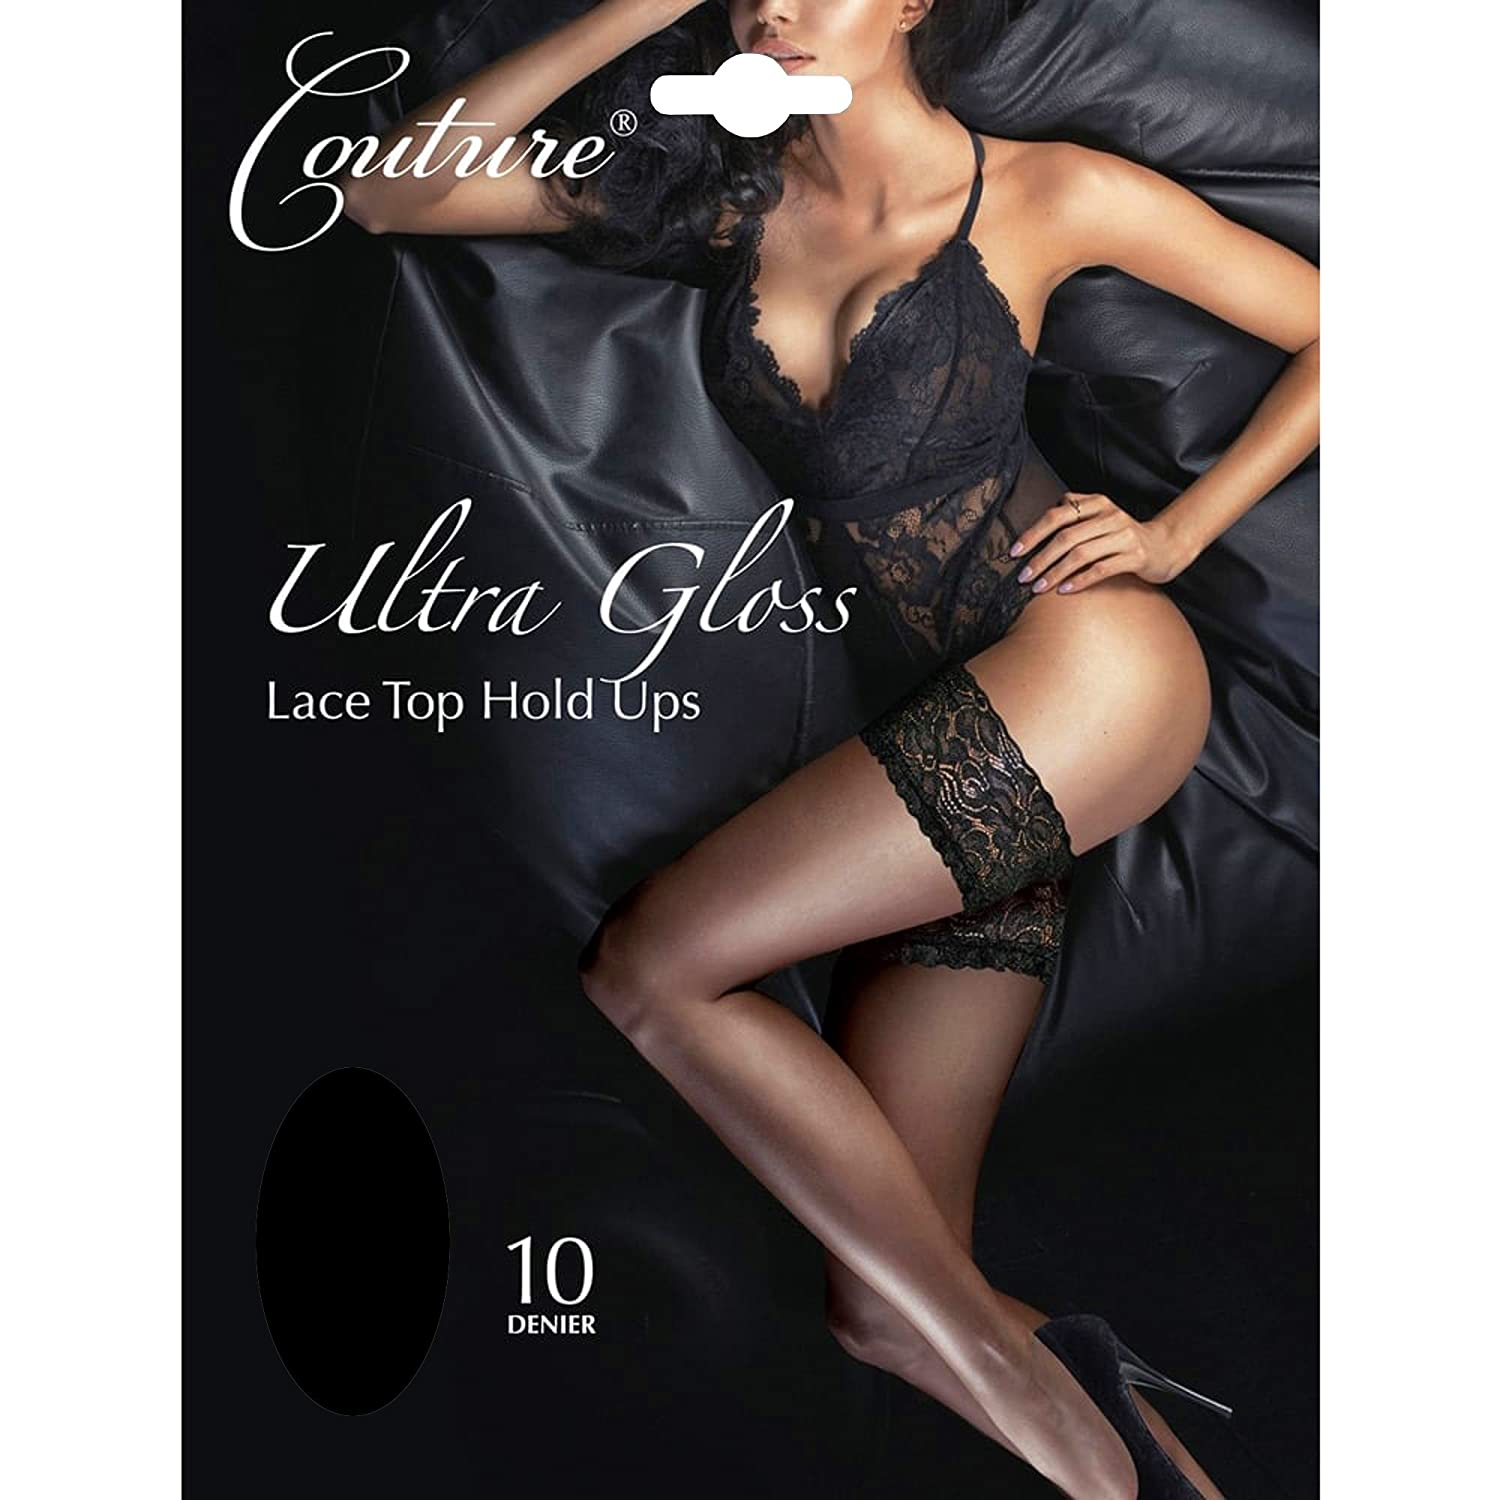 Couture Ultra Gloss Luxury 10 Denier Lace Top Hold Ups